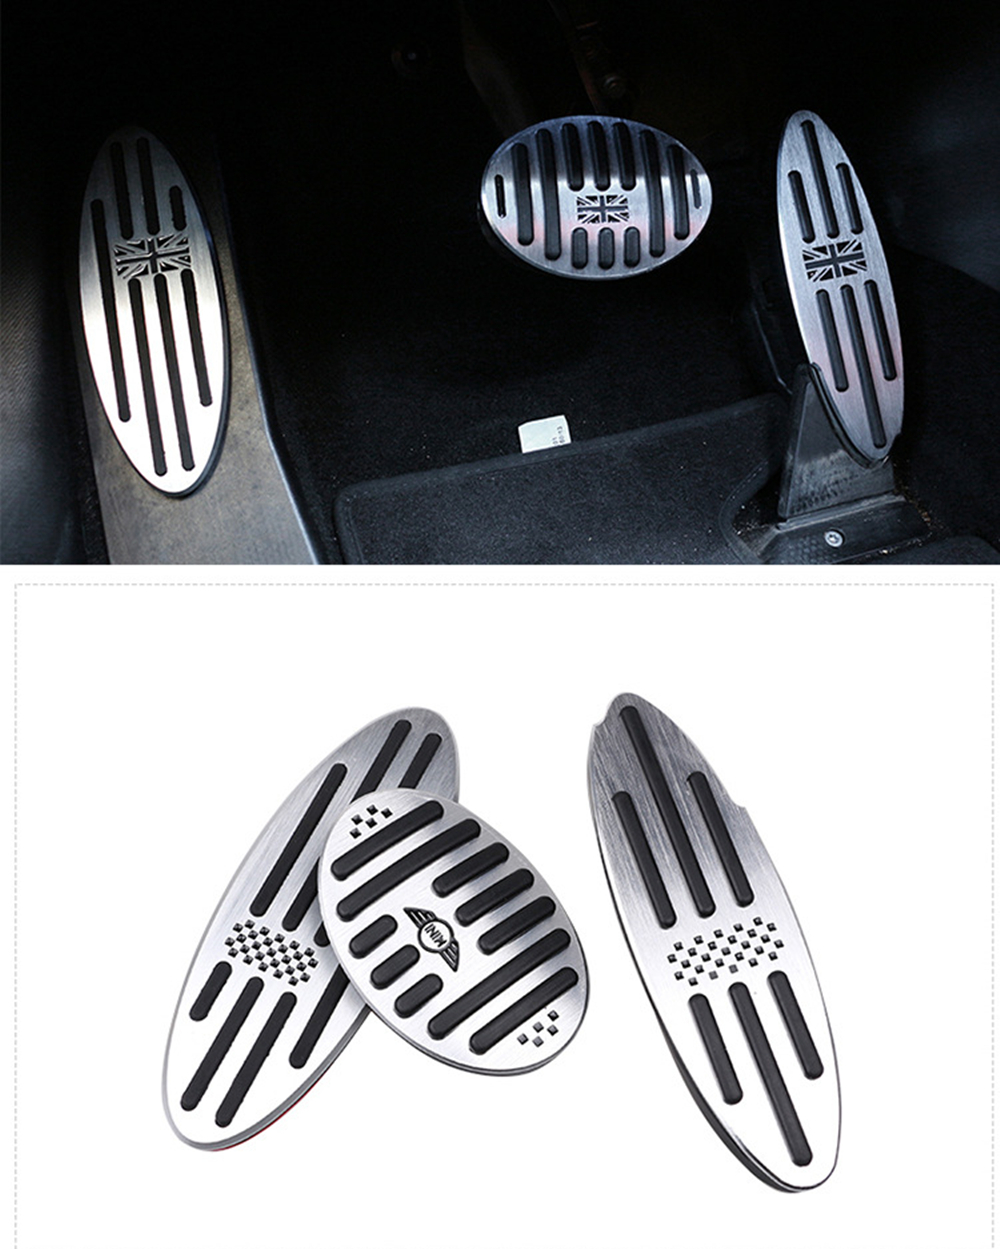 Car Accessories For R60 Mini Cooper S R55 R56 R60 R61 F54 F55 F56 F60 Aluminum Footrest Gas Brake Clutch Pedal Cover F56 F60 F55